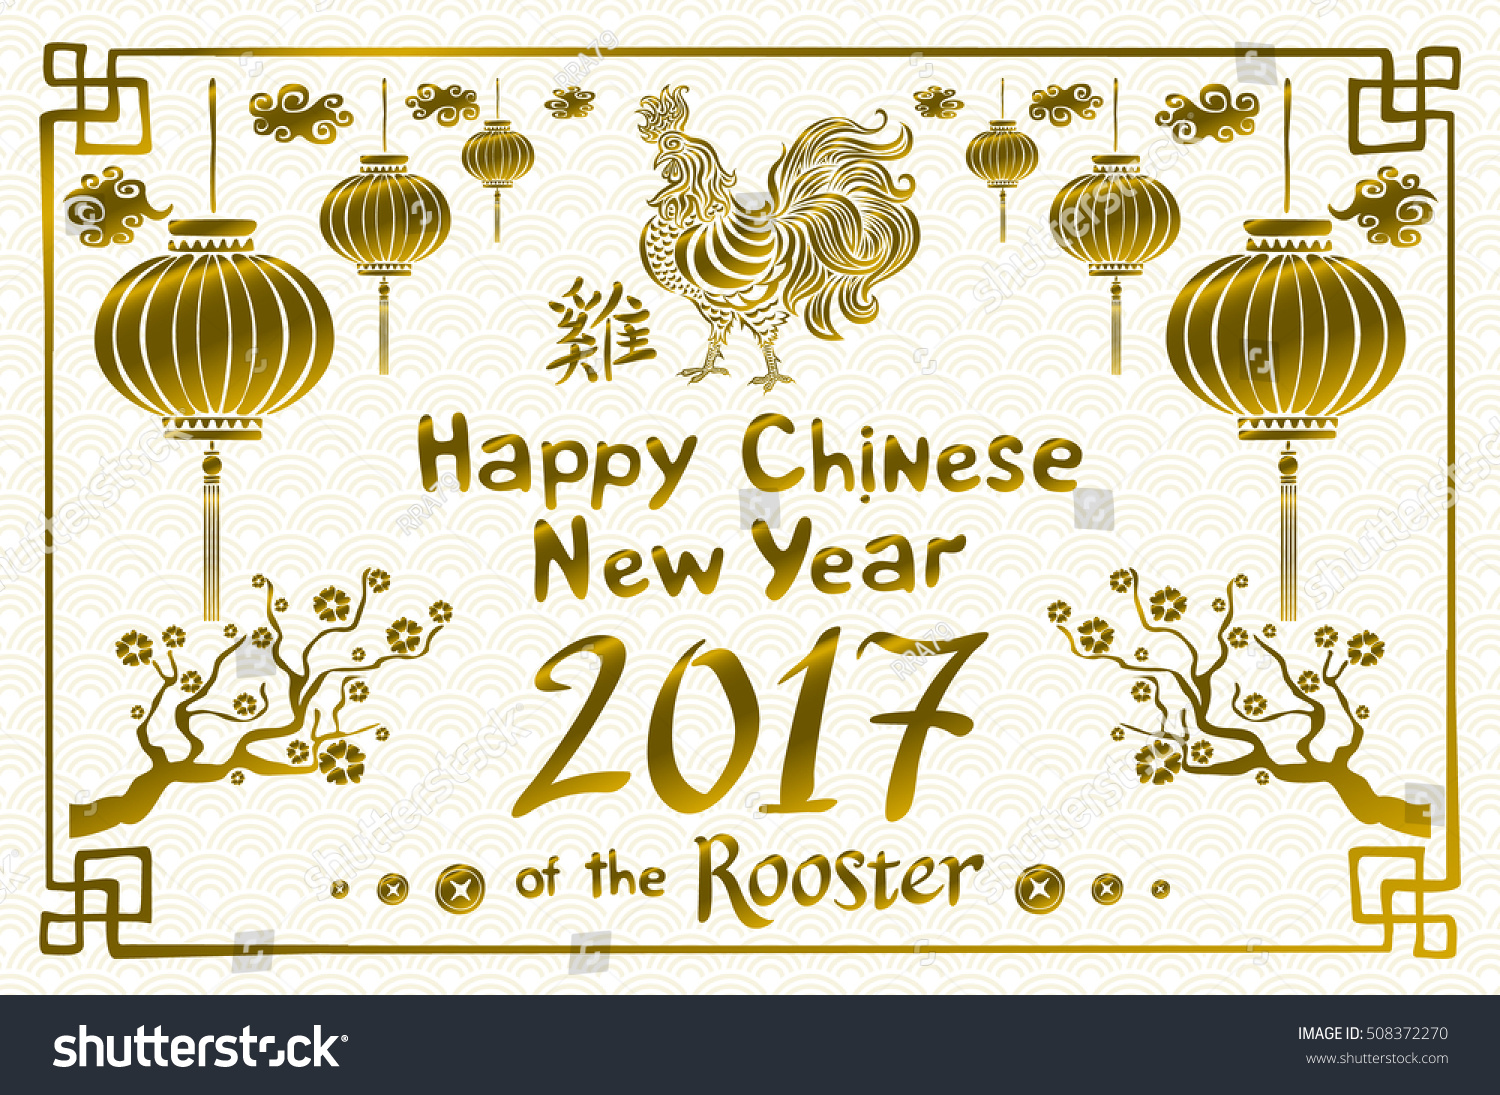 Gold 2017 new year chinese symbol stock vector 508372270 shutterstock gold 2017 new year with chinese symbol of rooster dragon fish scales background art buycottarizona Gallery